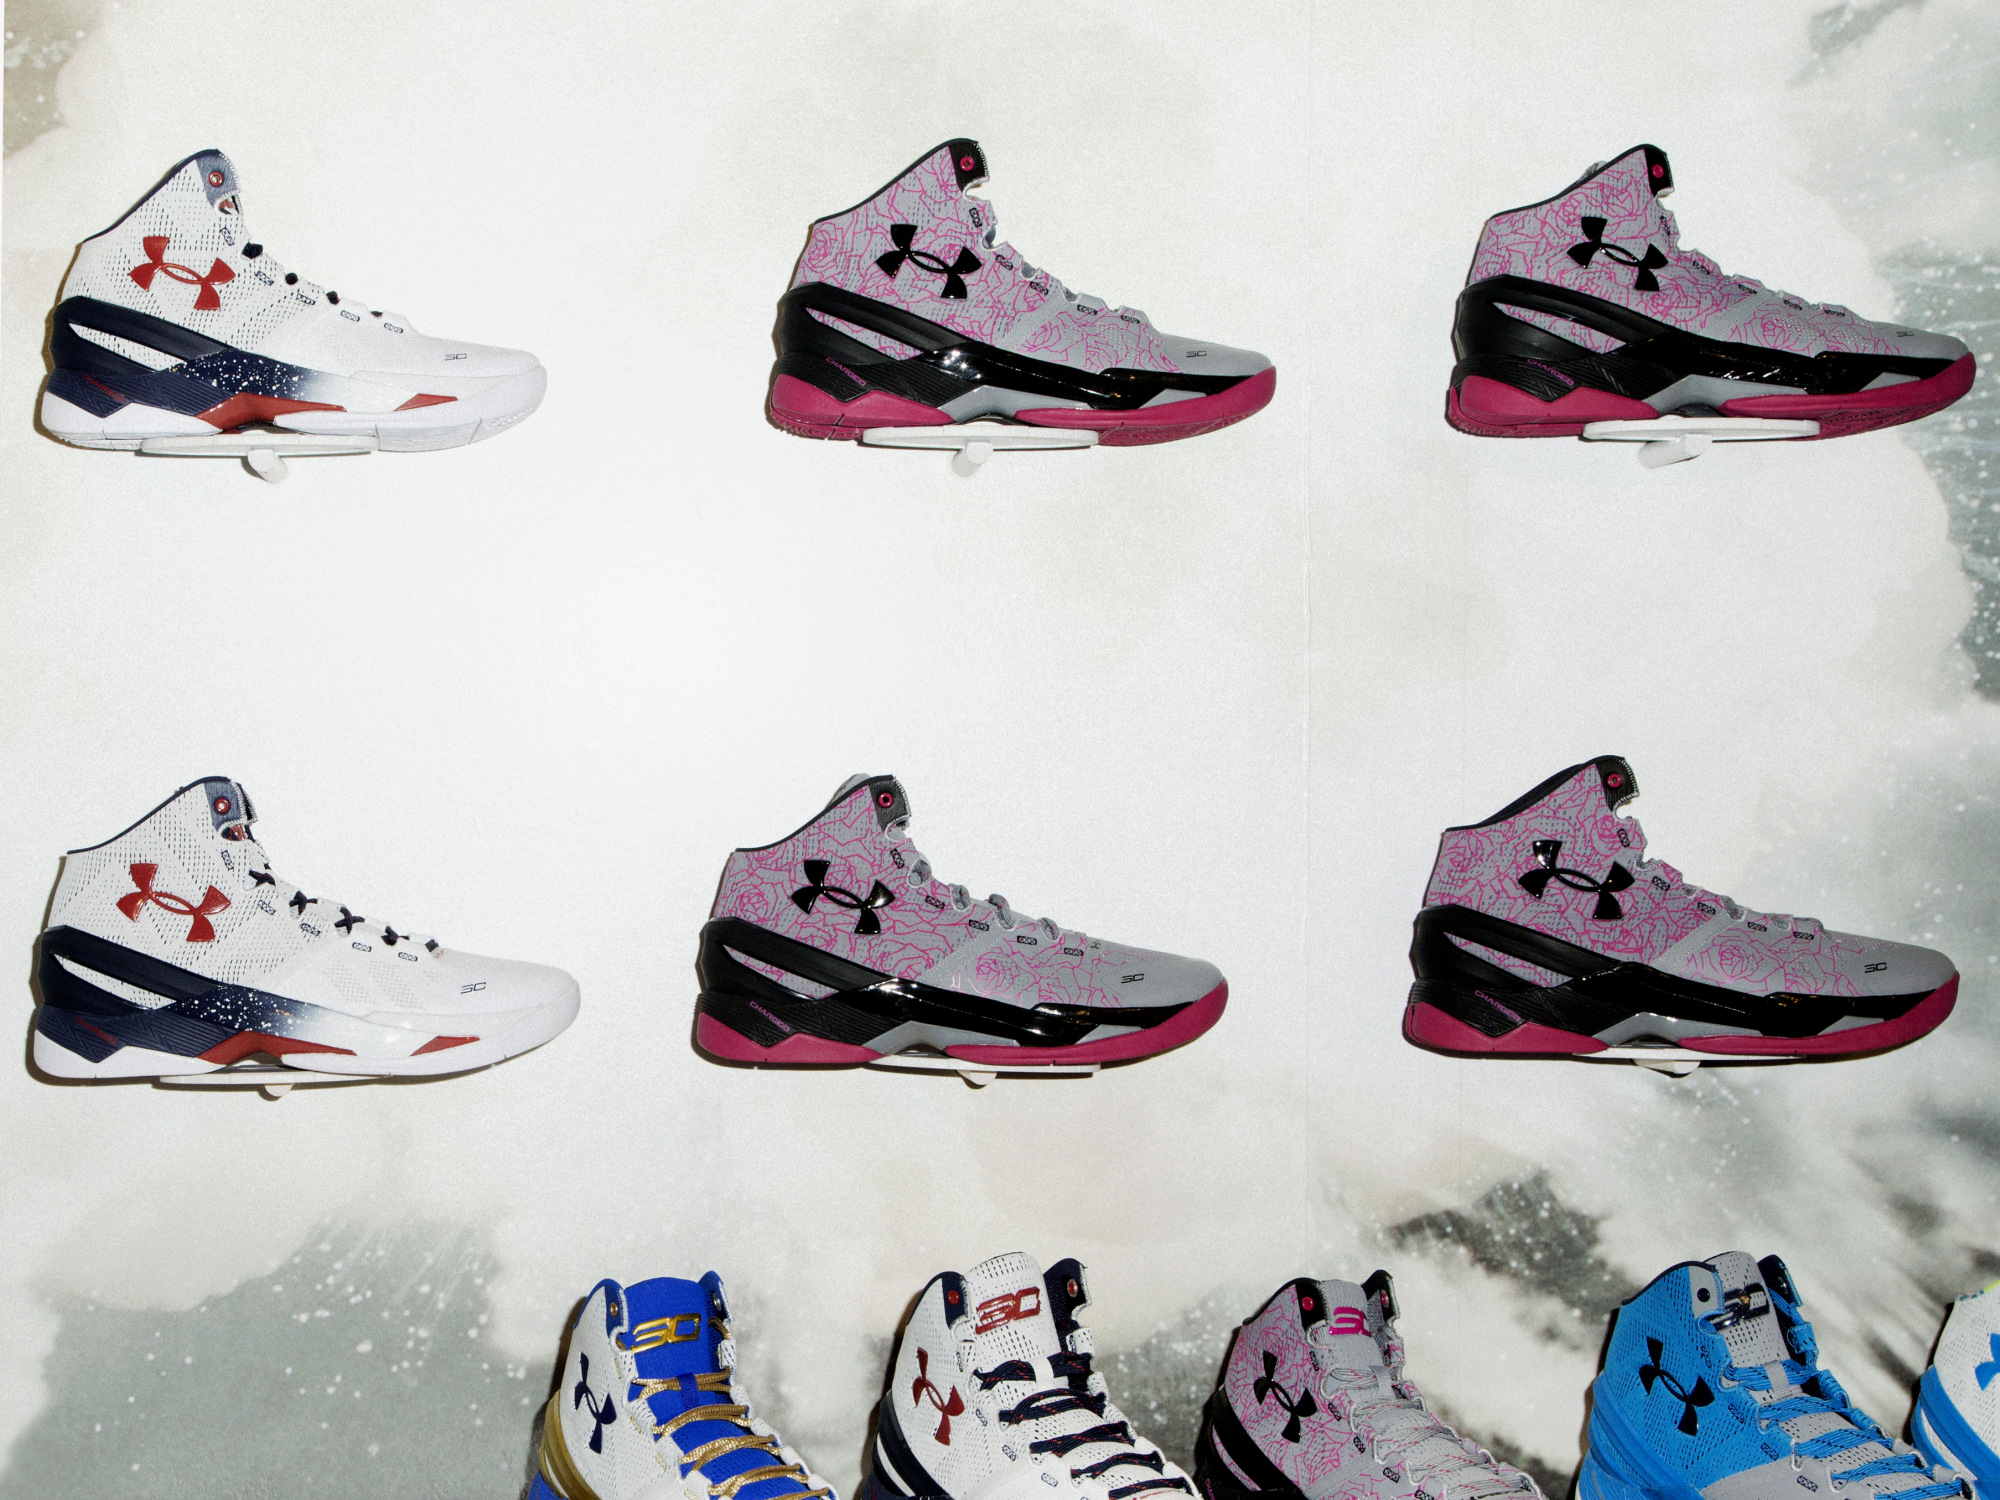 Steph Curry Tells Under Armour to